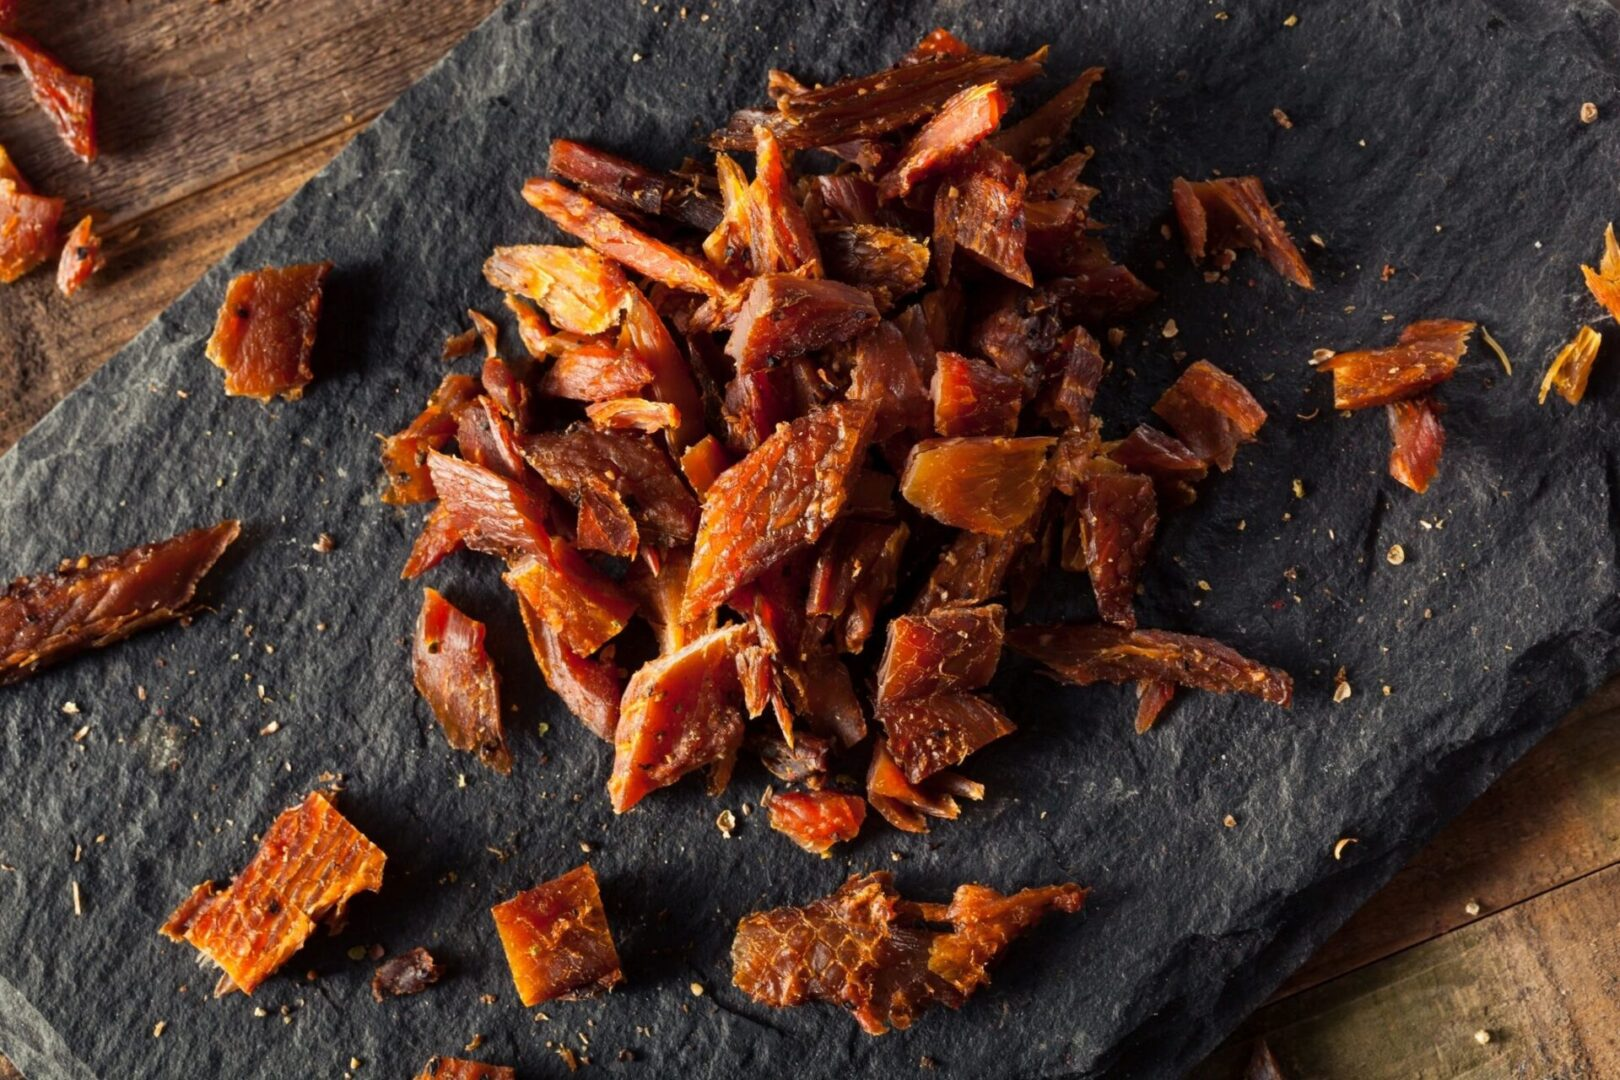 A pile of jerky